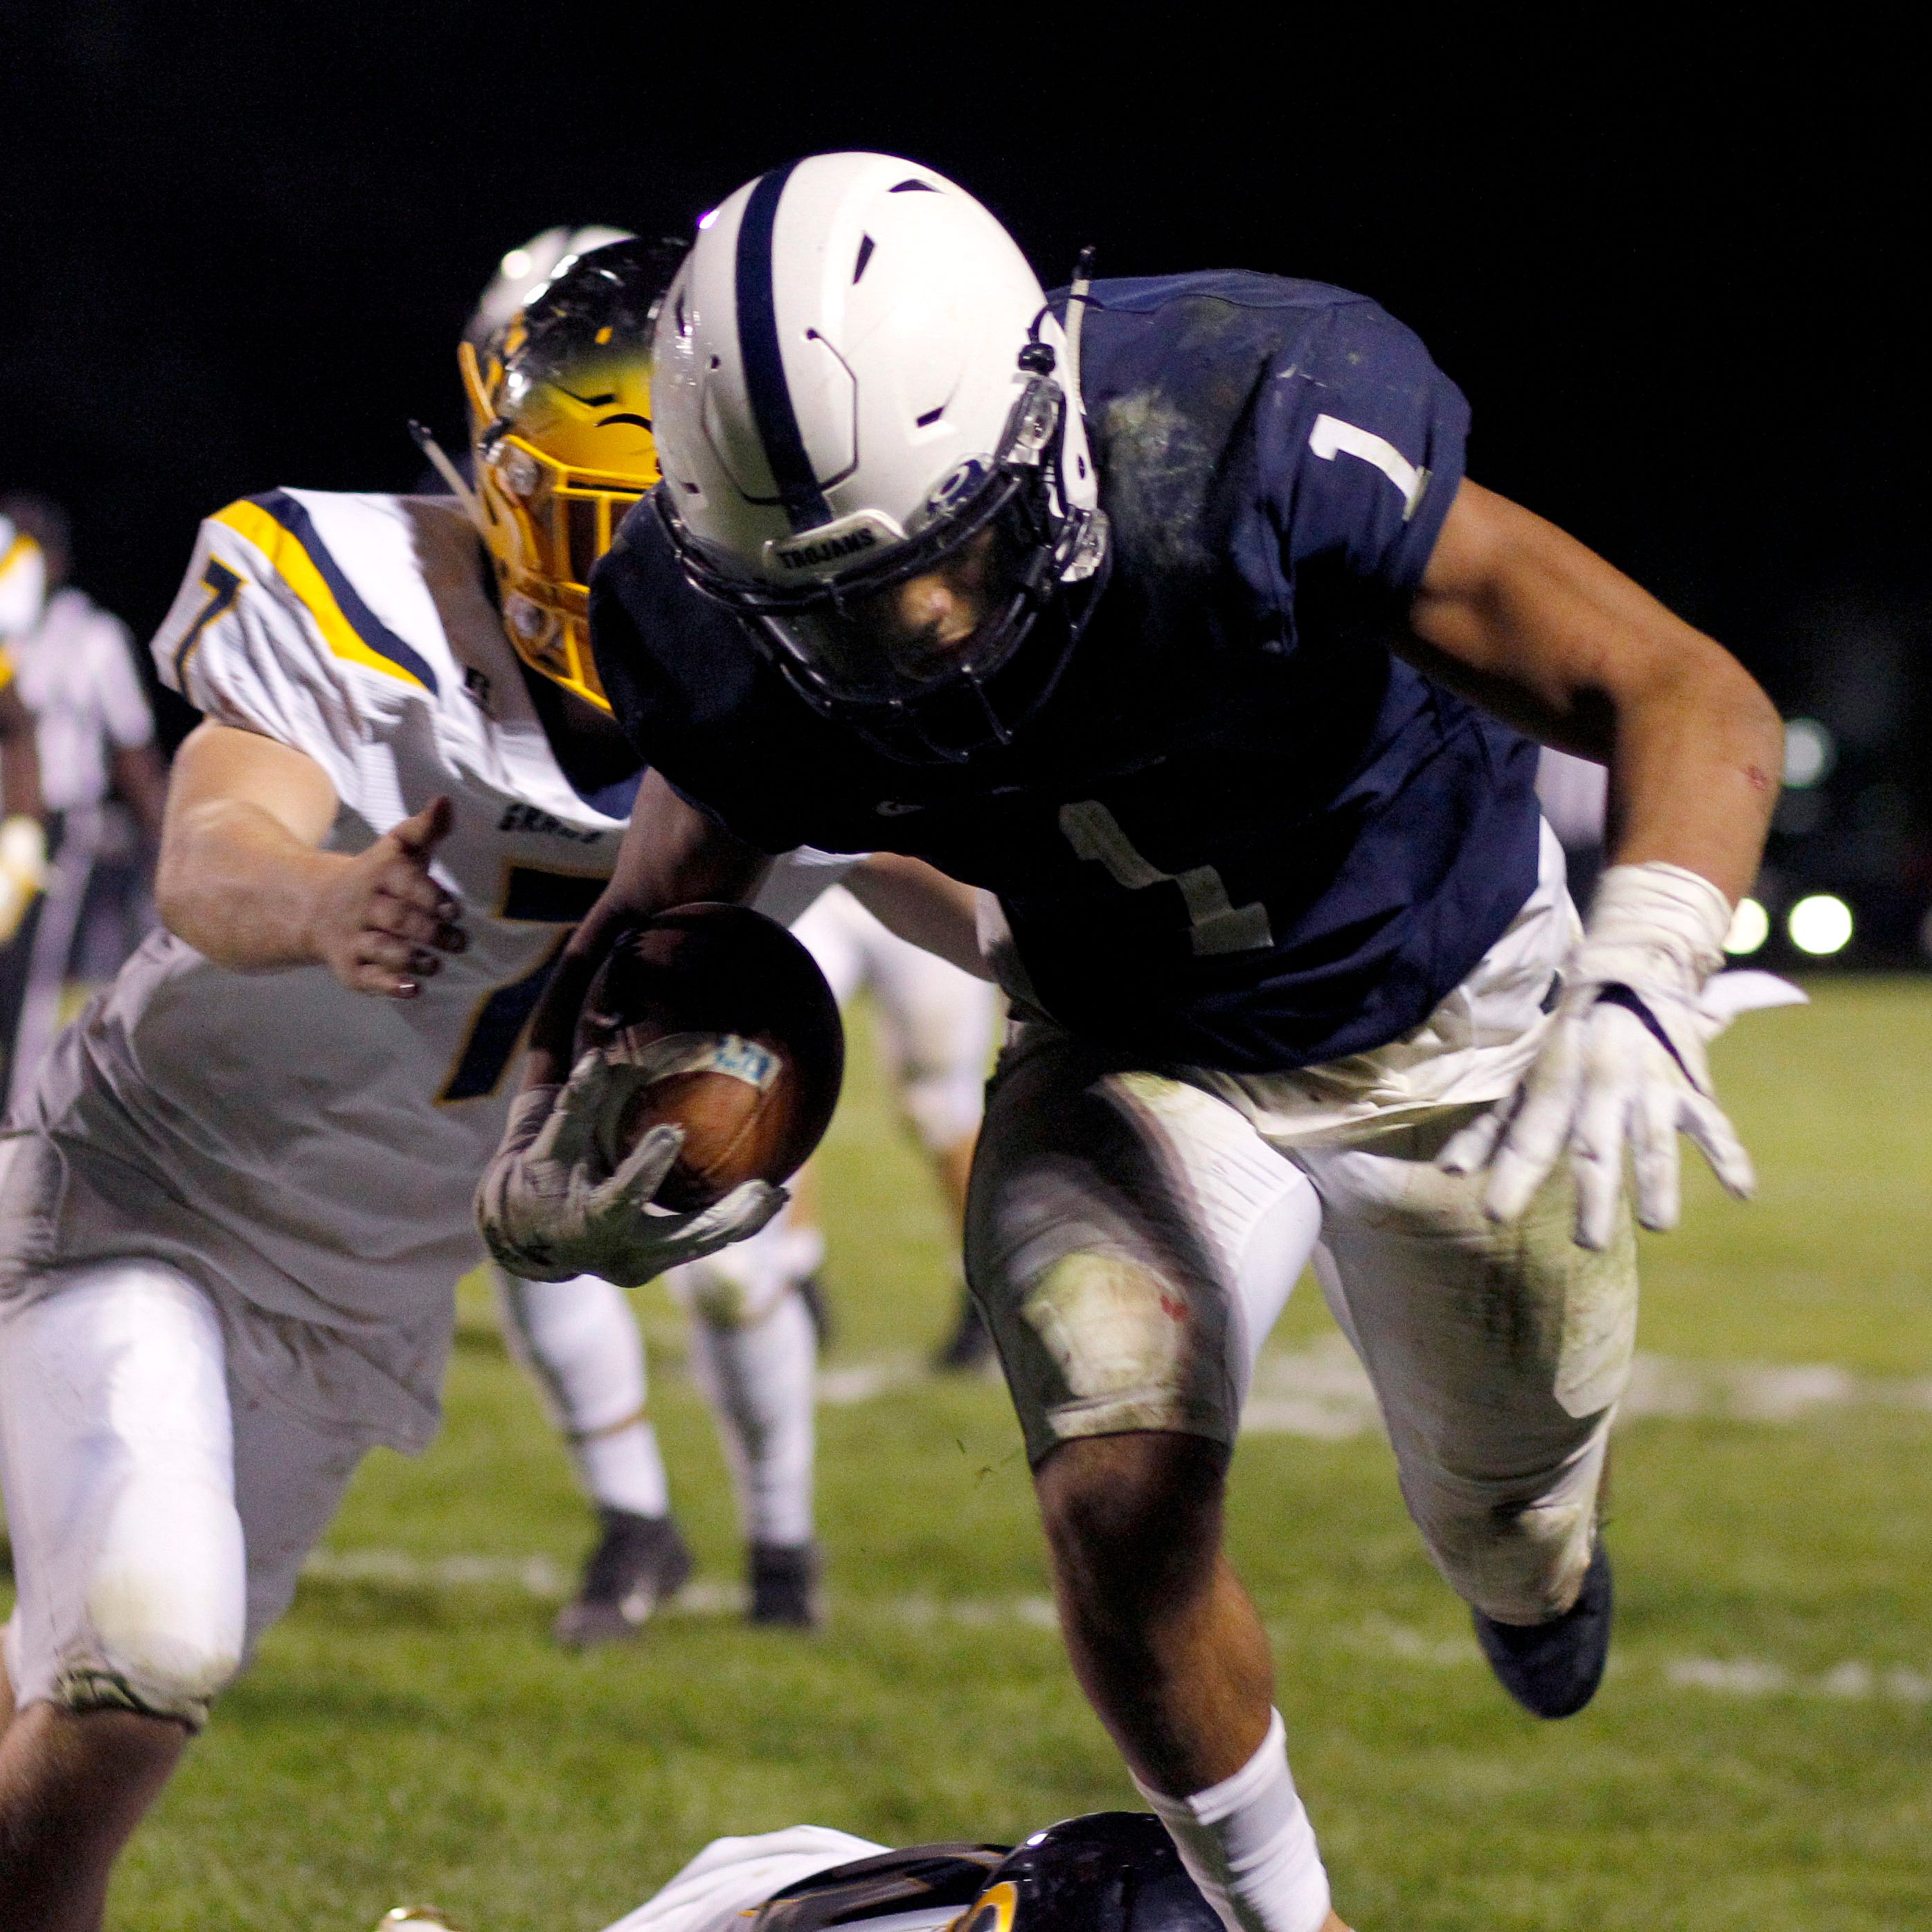 Lansing area high school football scores for Week 4